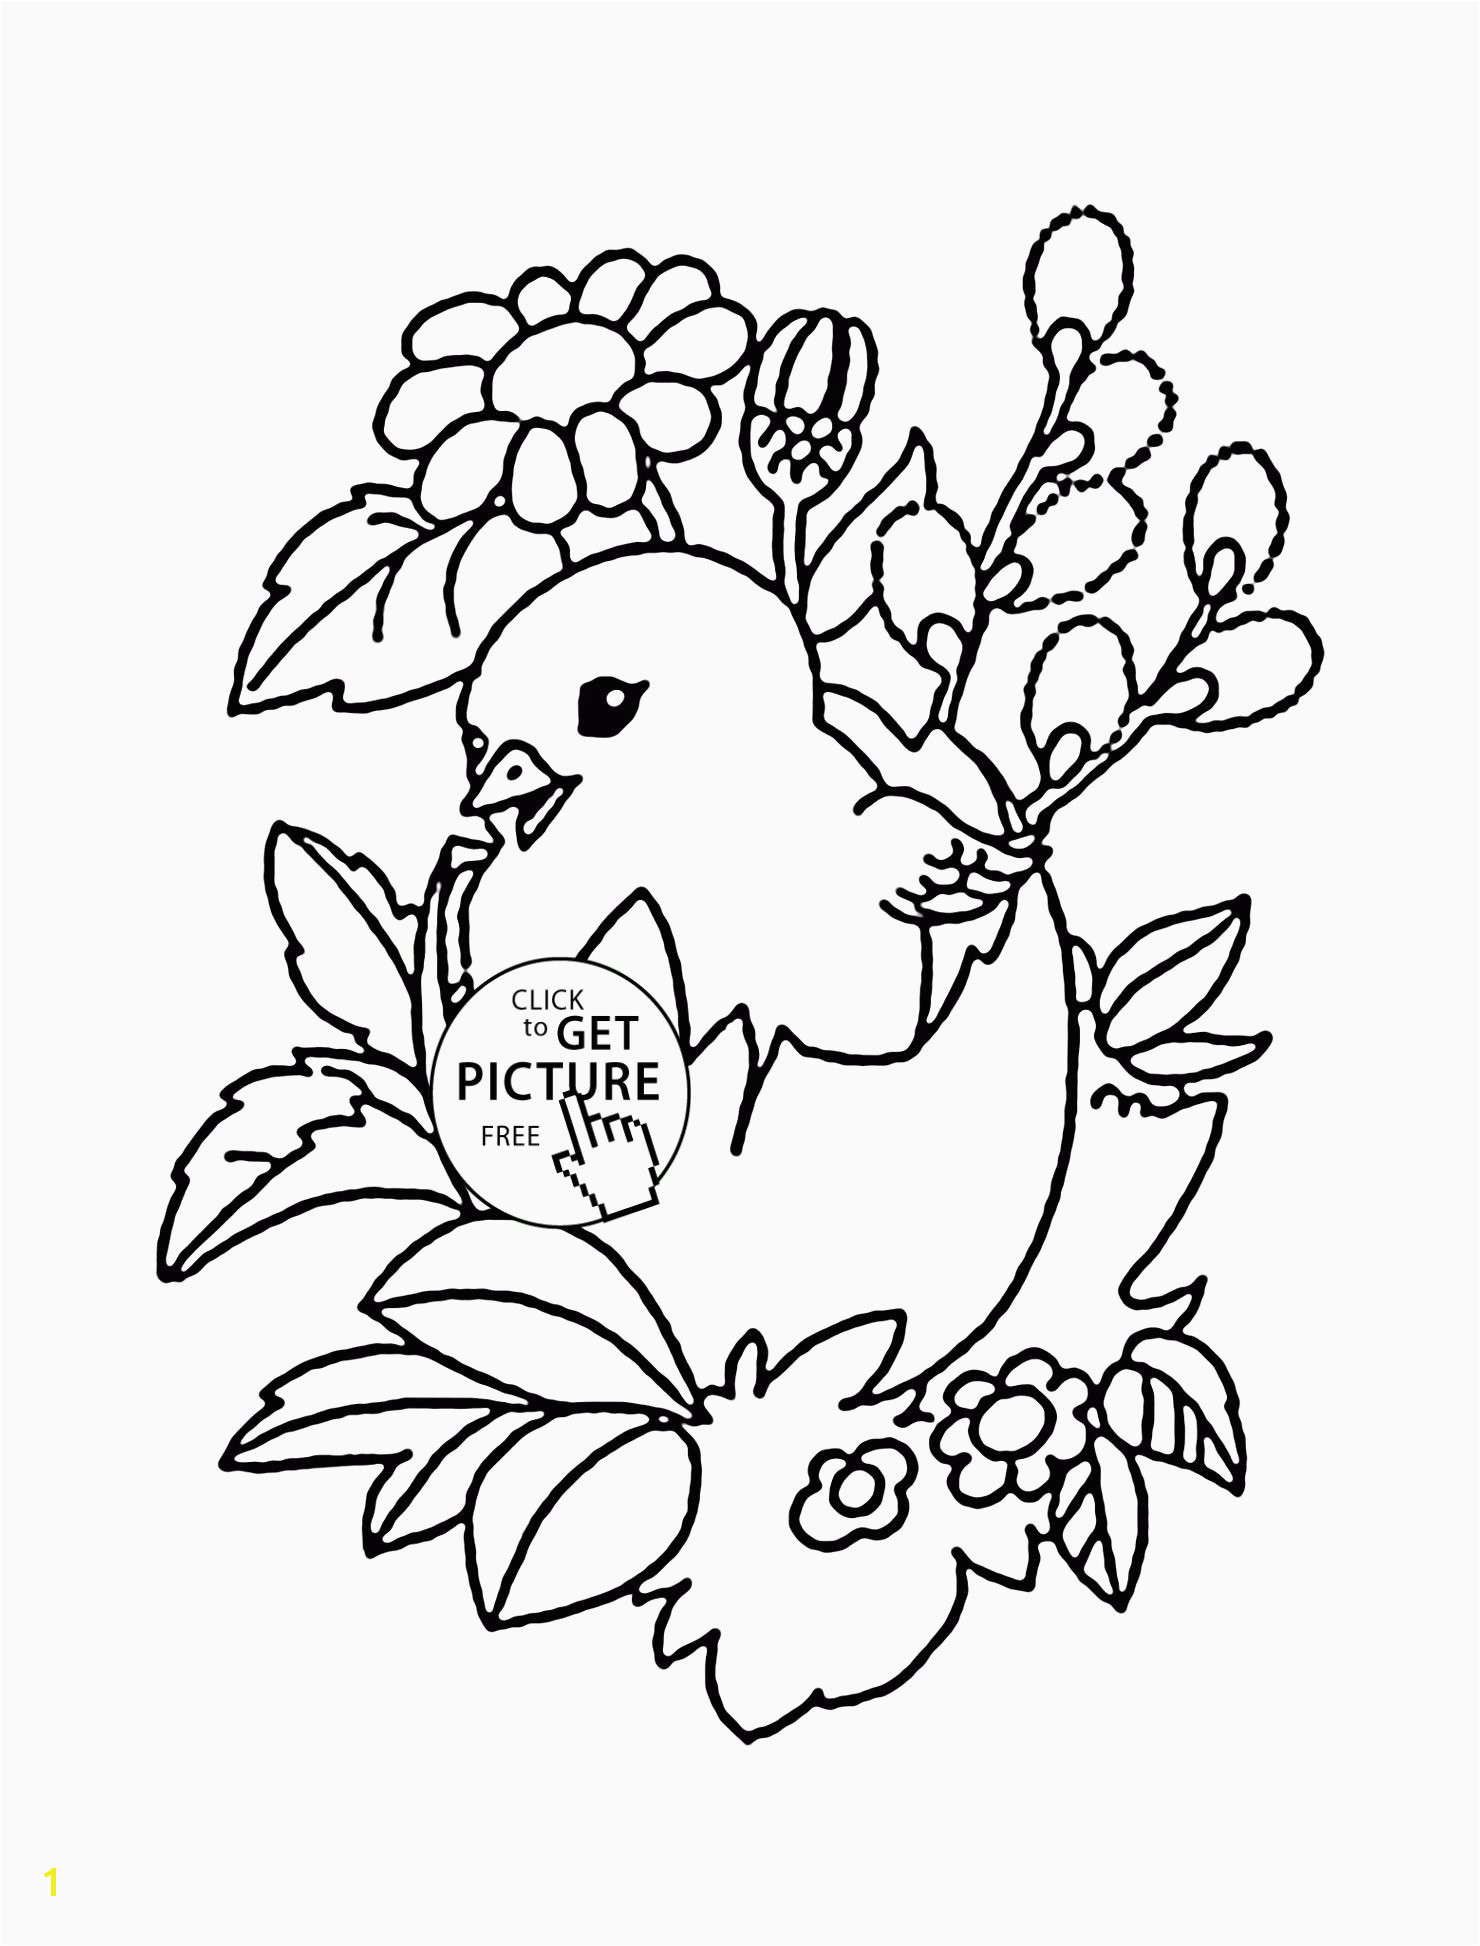 Baby Chick Coloring Page New 99 Ideas Free Printable Easter Baby Chick Coloring Pages